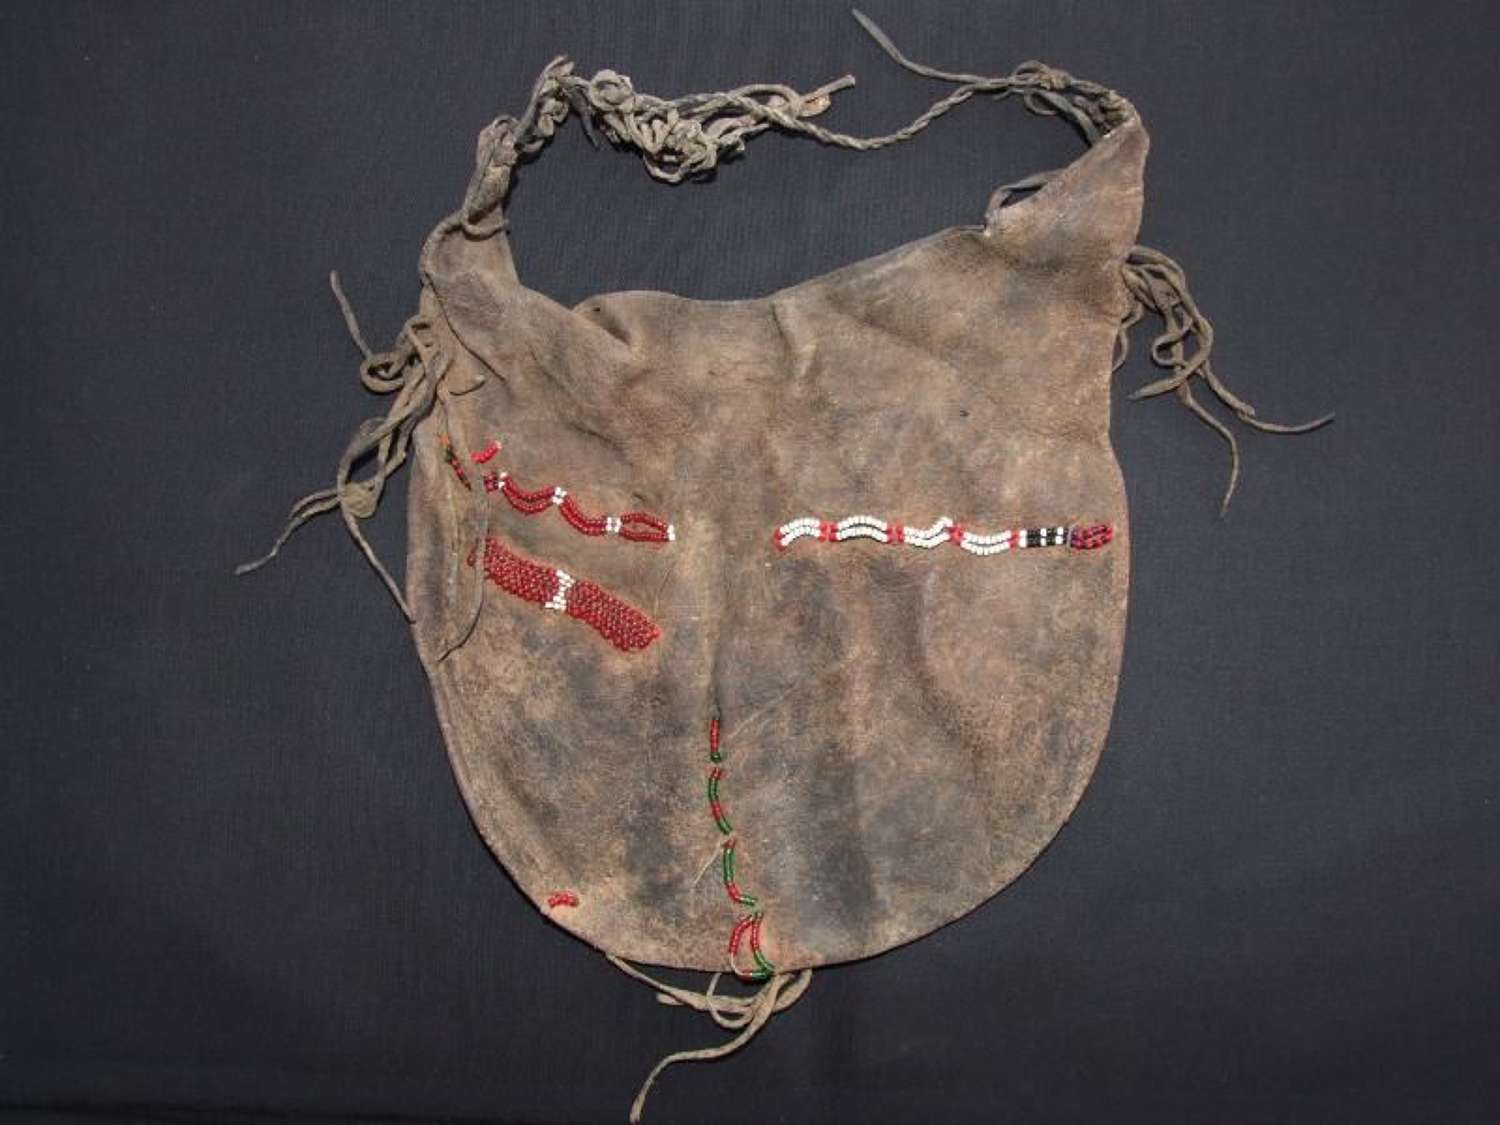 19th Century North American Indian Leather Pouch